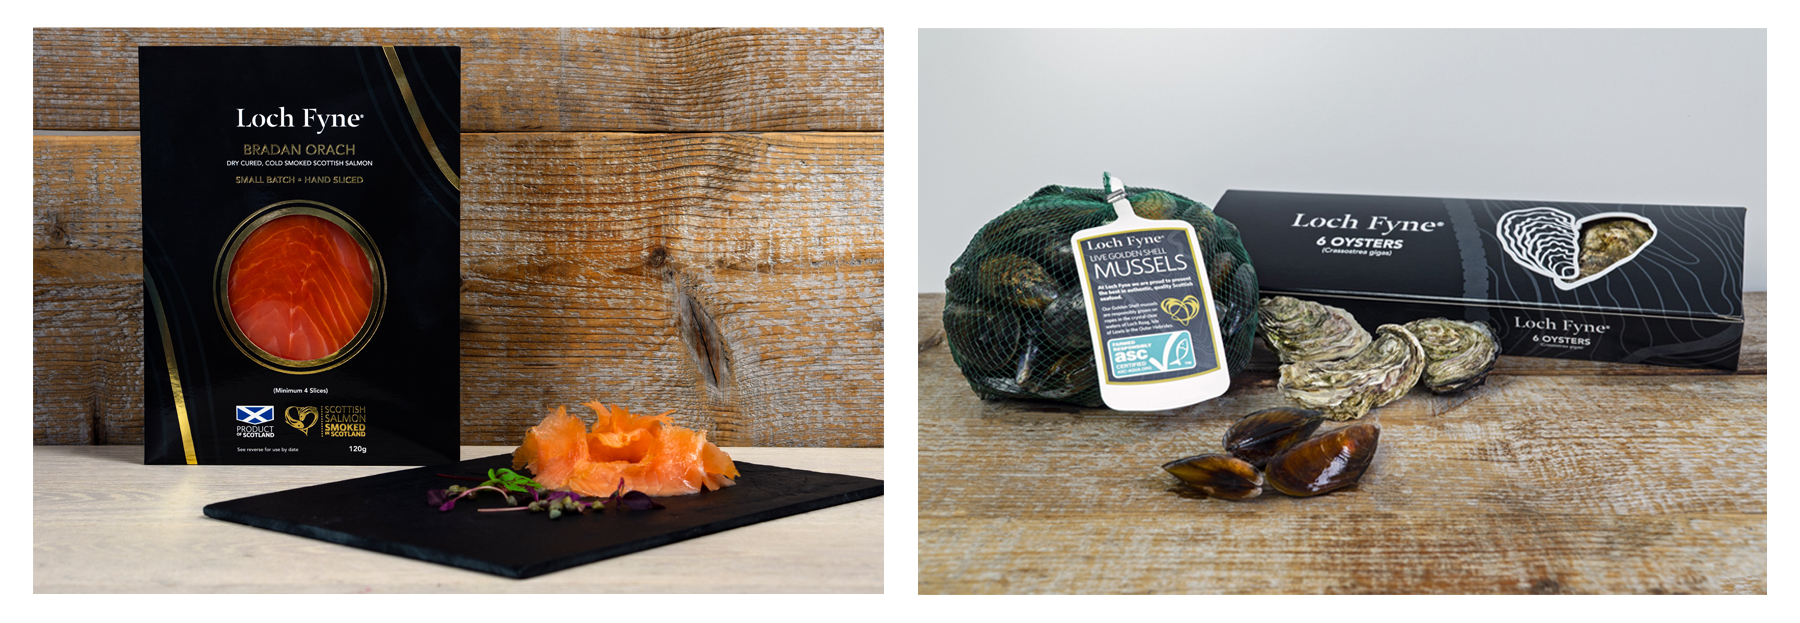 Loch Fyne Oysters & Mussels now available at Waitrose